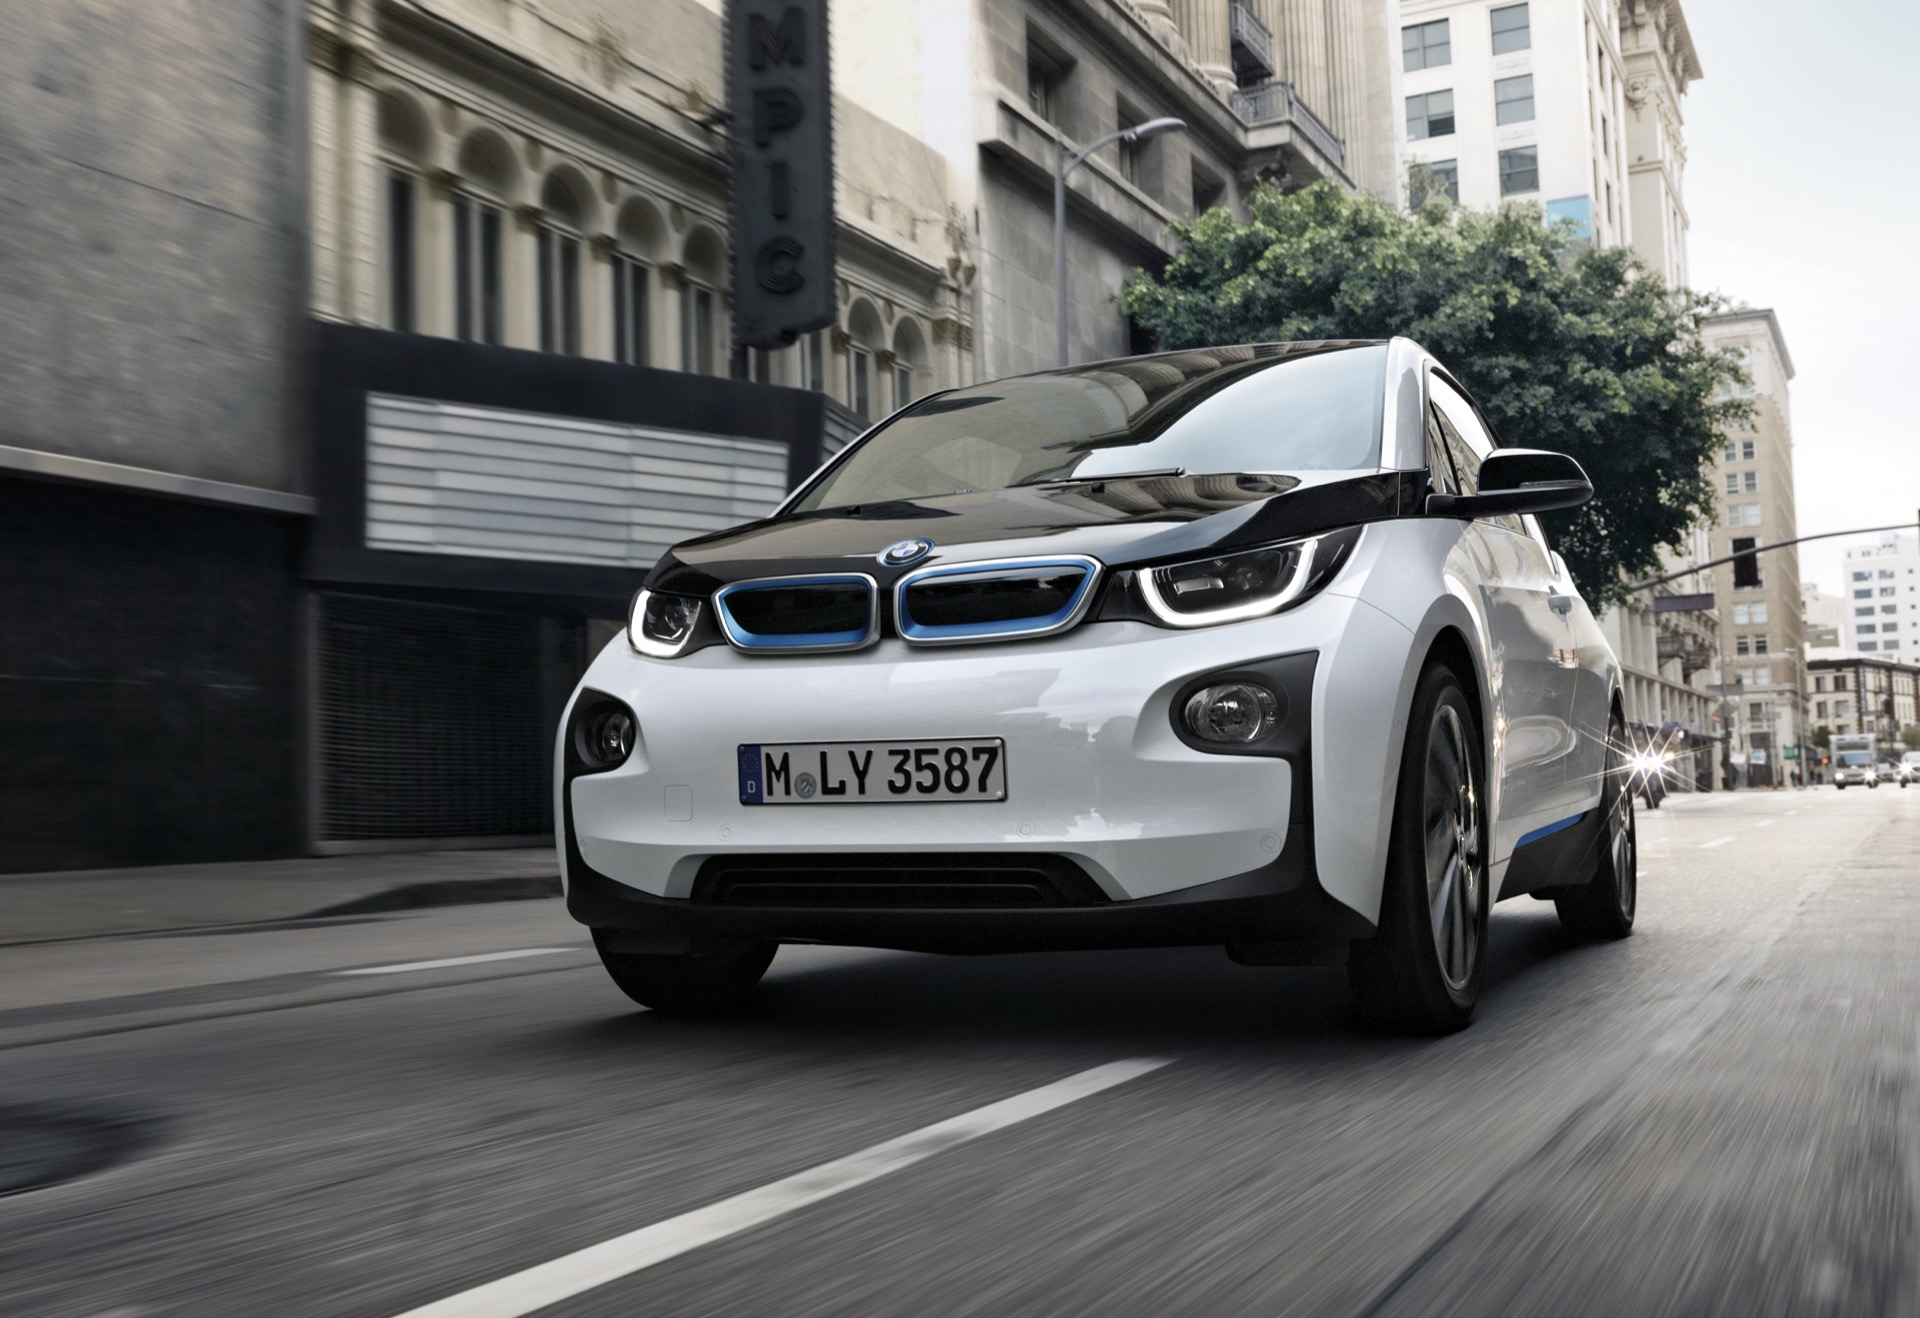 2017 bmw i3 rex 97 mile electric range lower efficiency. Black Bedroom Furniture Sets. Home Design Ideas